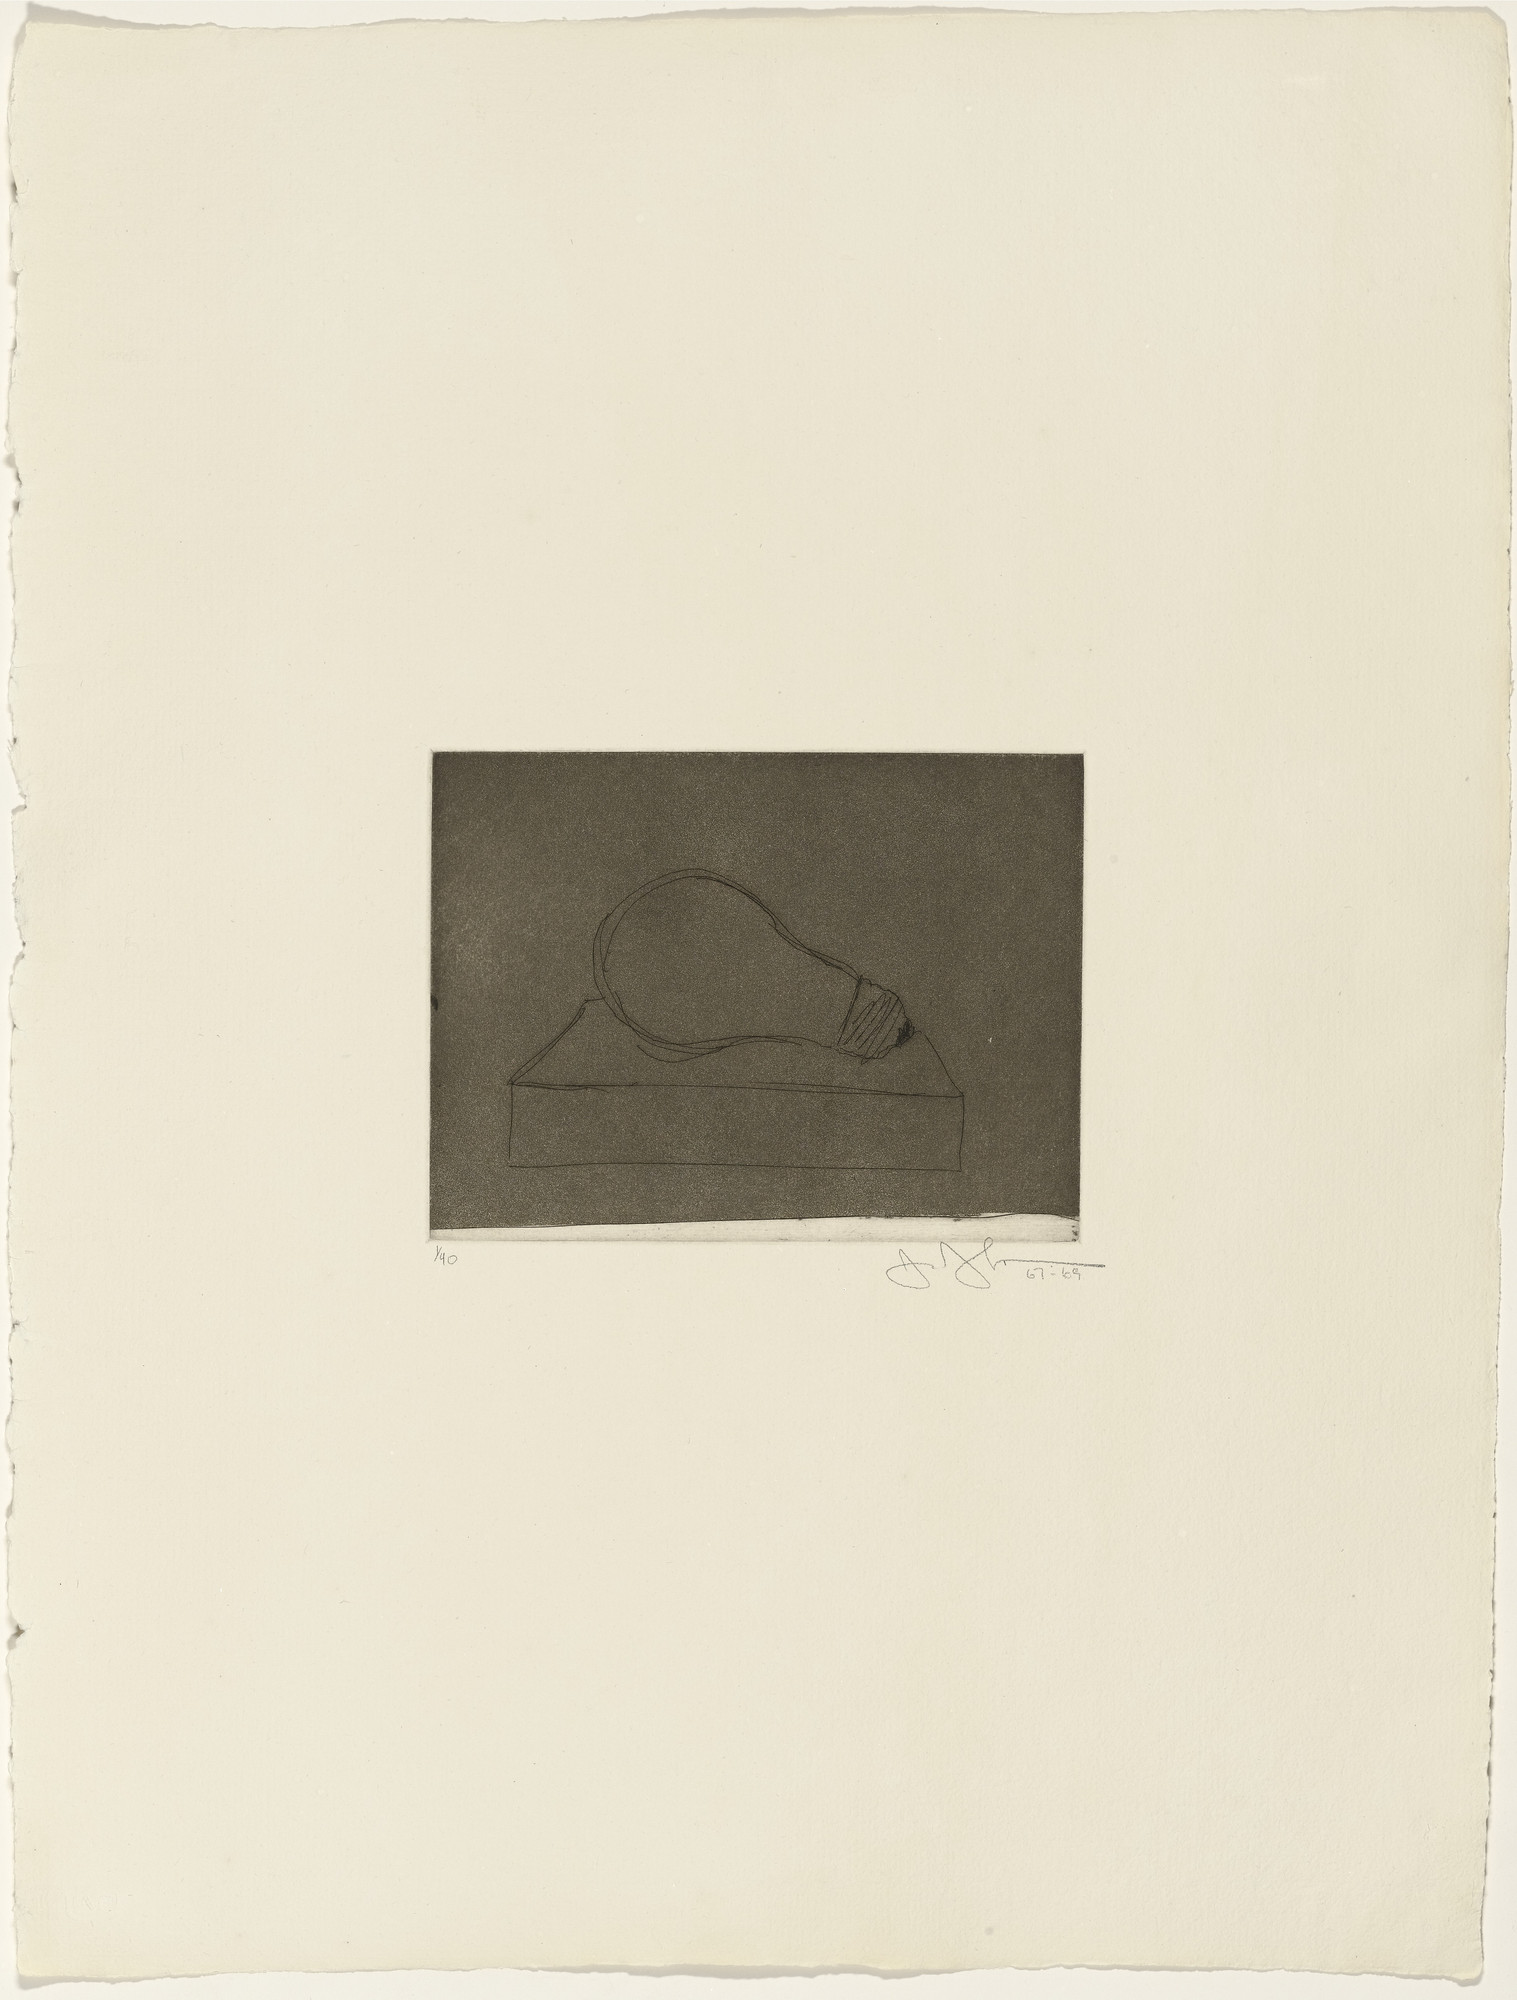 Jasper Johns. Light Bulb from 1st Etchings-2nd State. 1967–69, published 1969